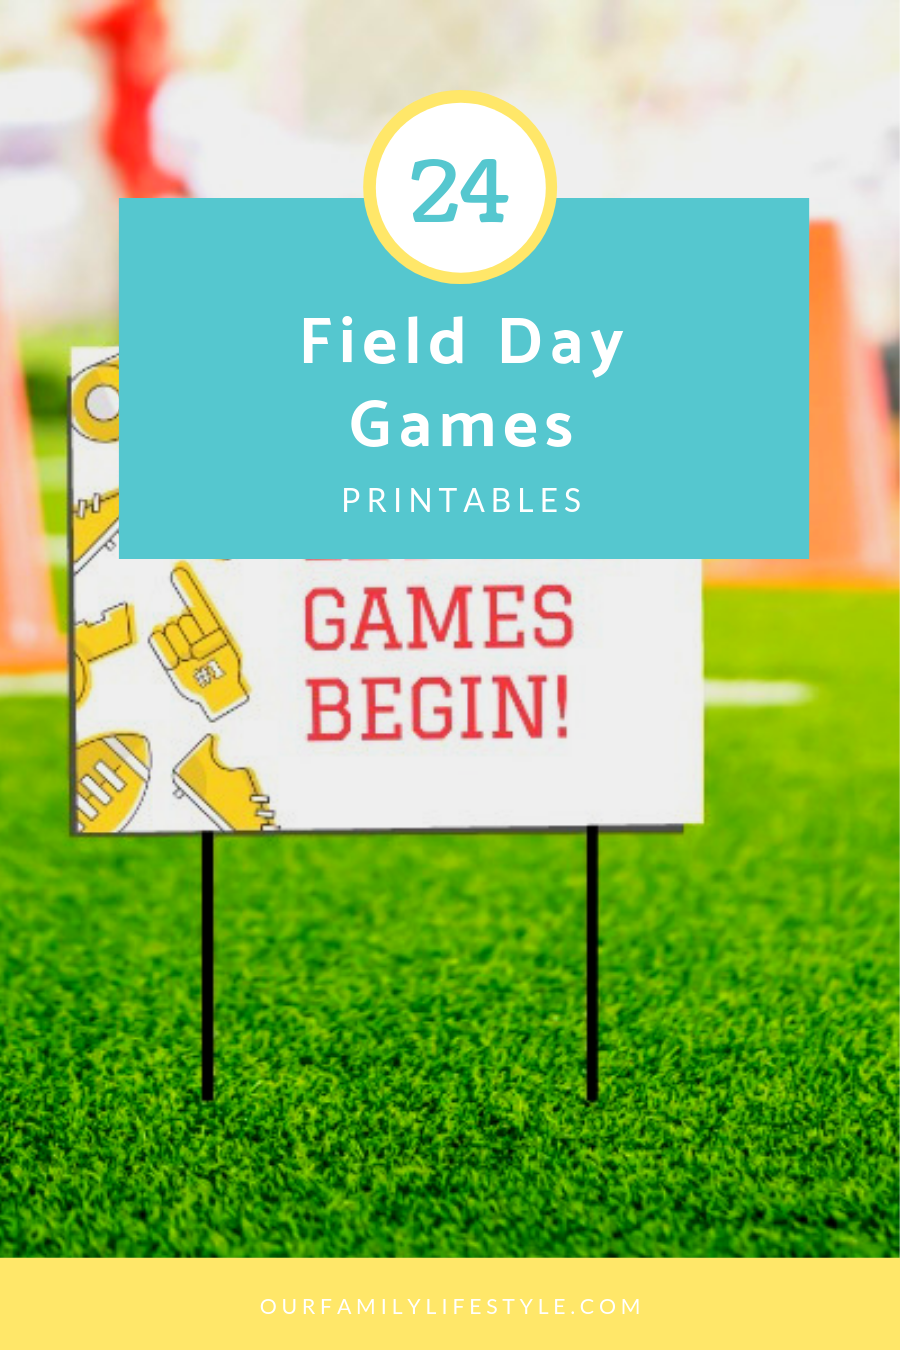 24 Field Day Games Printables